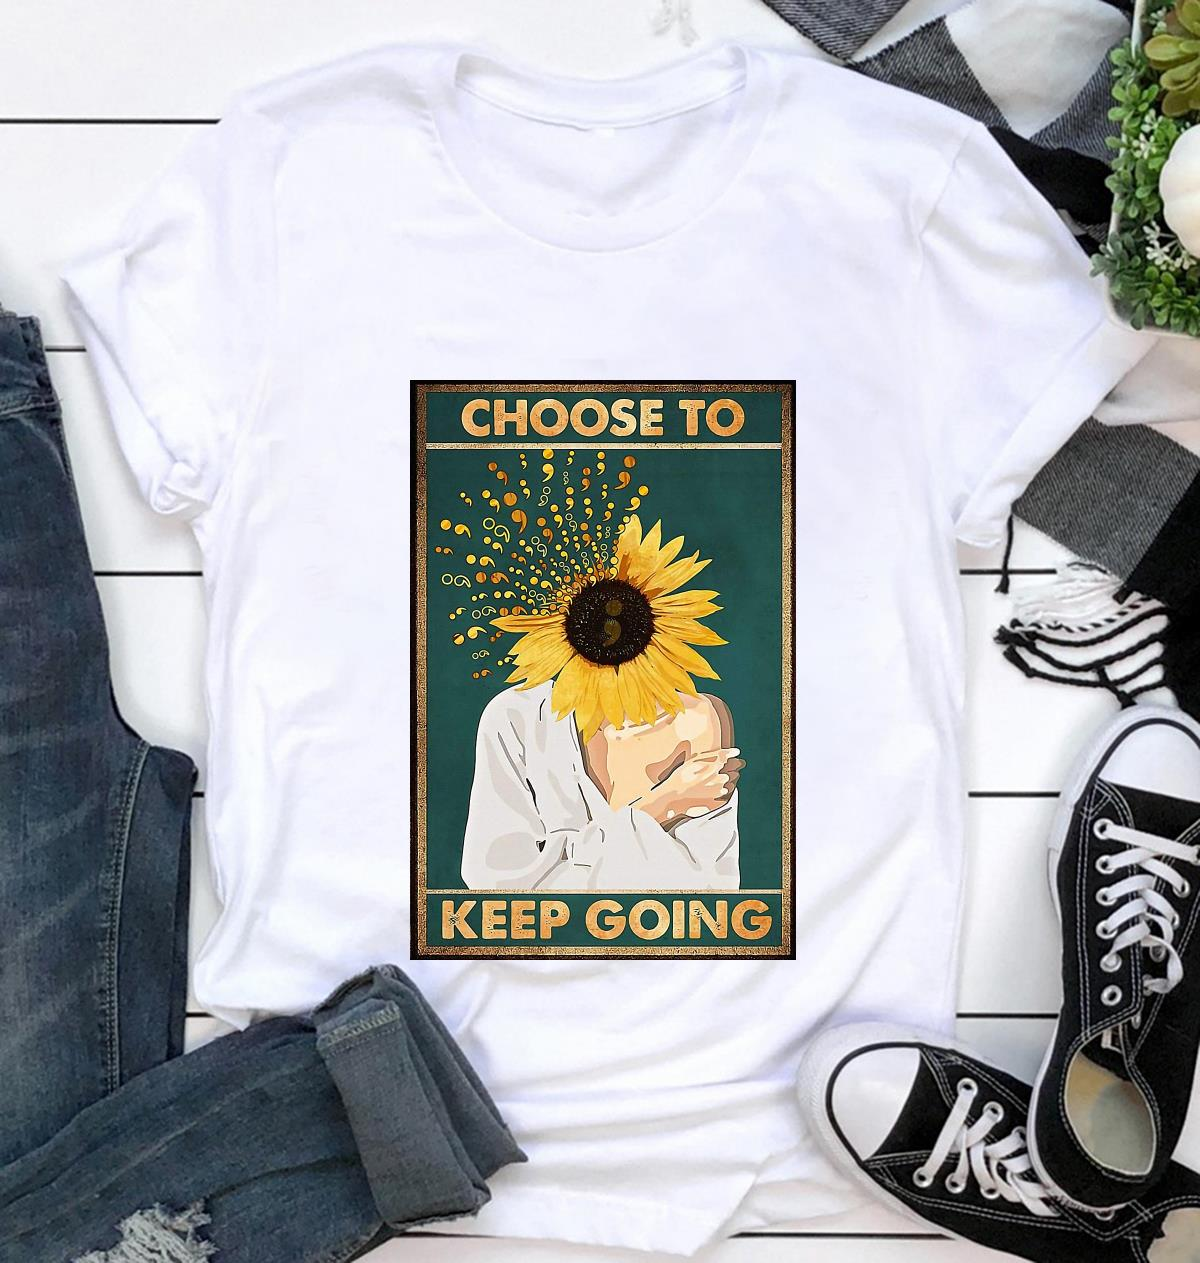 Choose to keep going semicolon sunflower prevent poster t-shirt